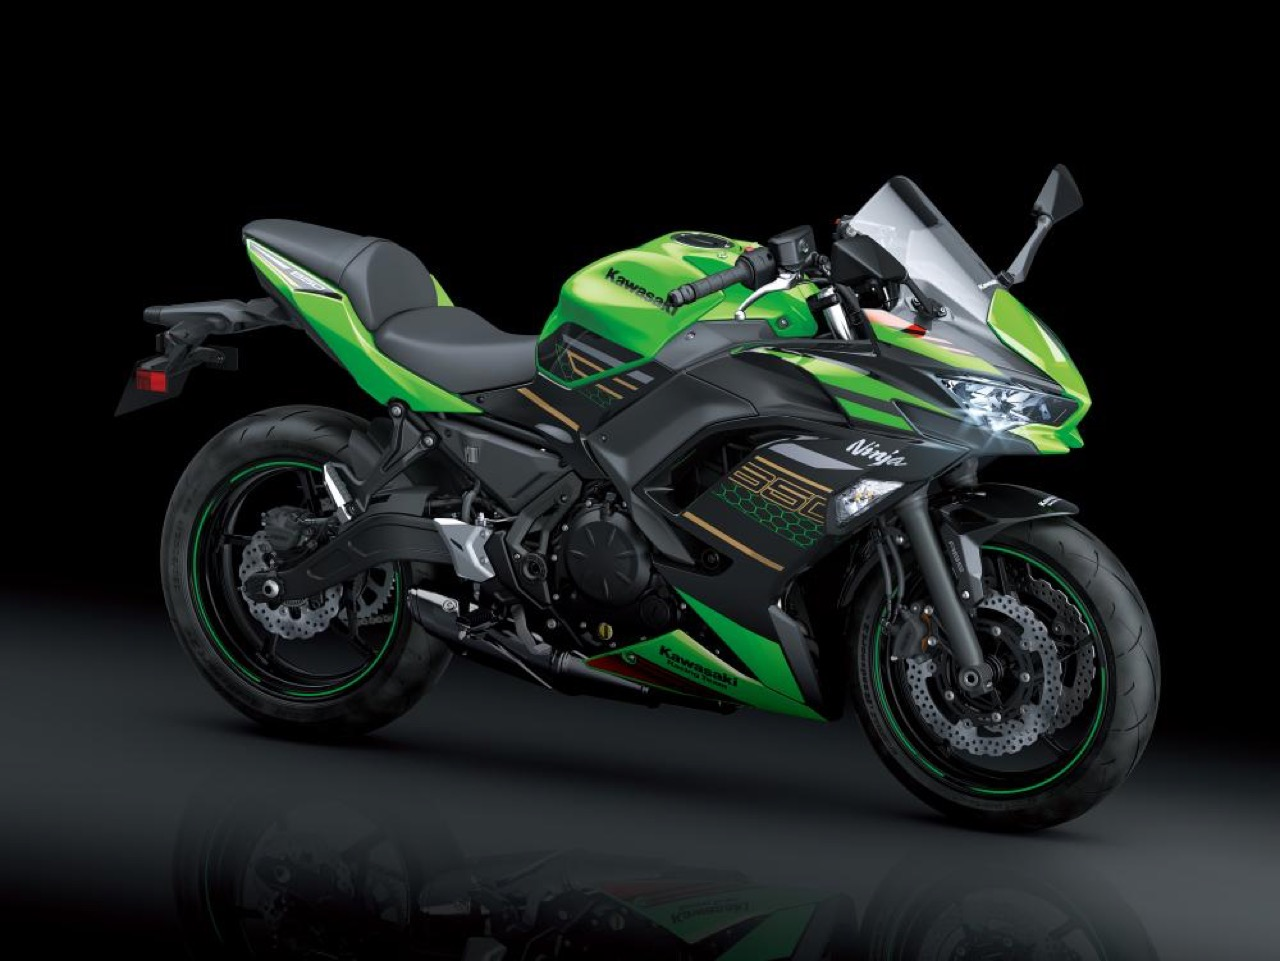 Kawasaki Ninja 650 Model Year 2020 - foto